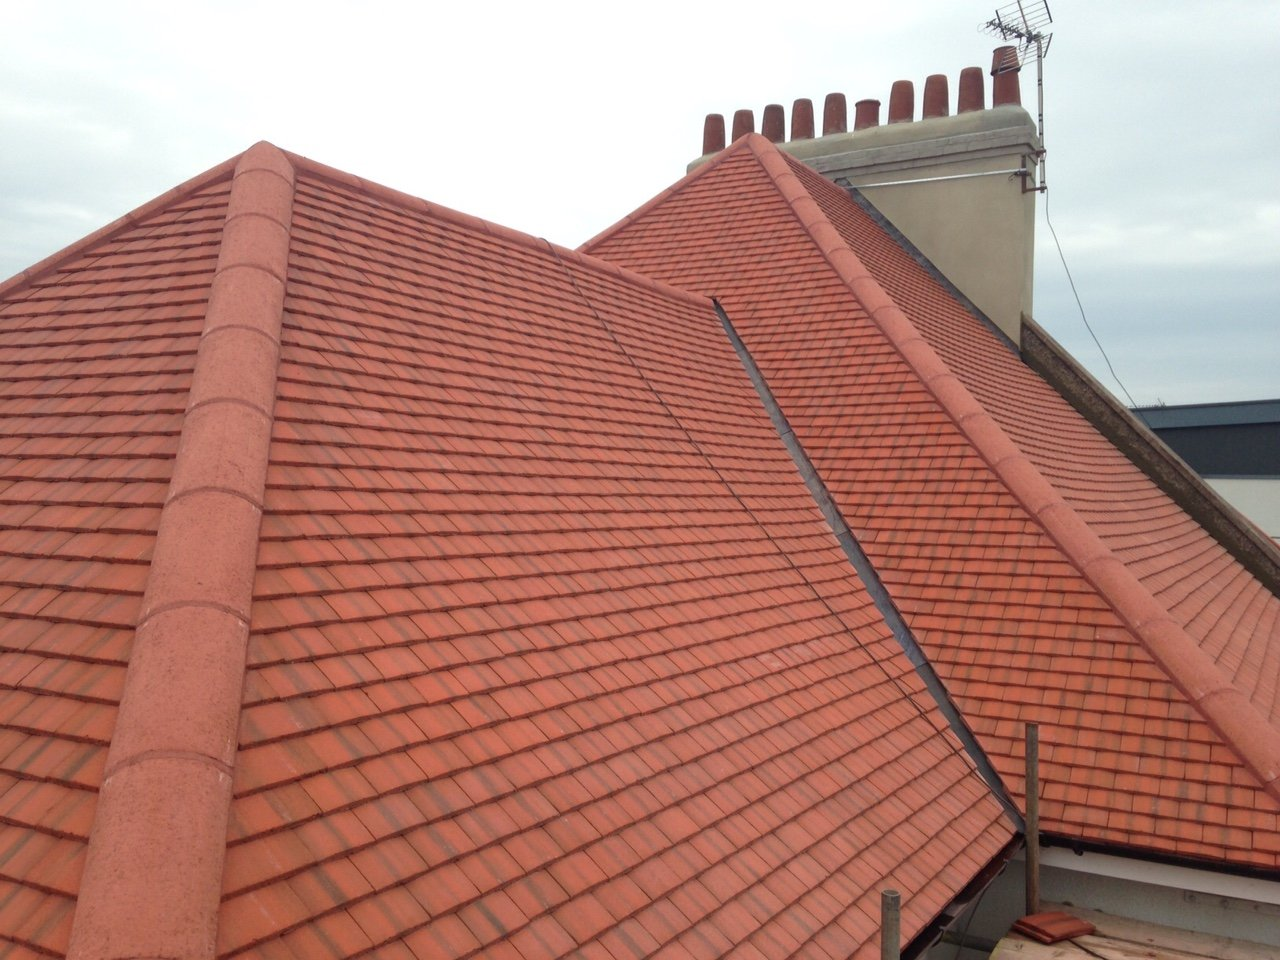 installation of a red tiled roof by Affordable Roofing Ltd in Devon